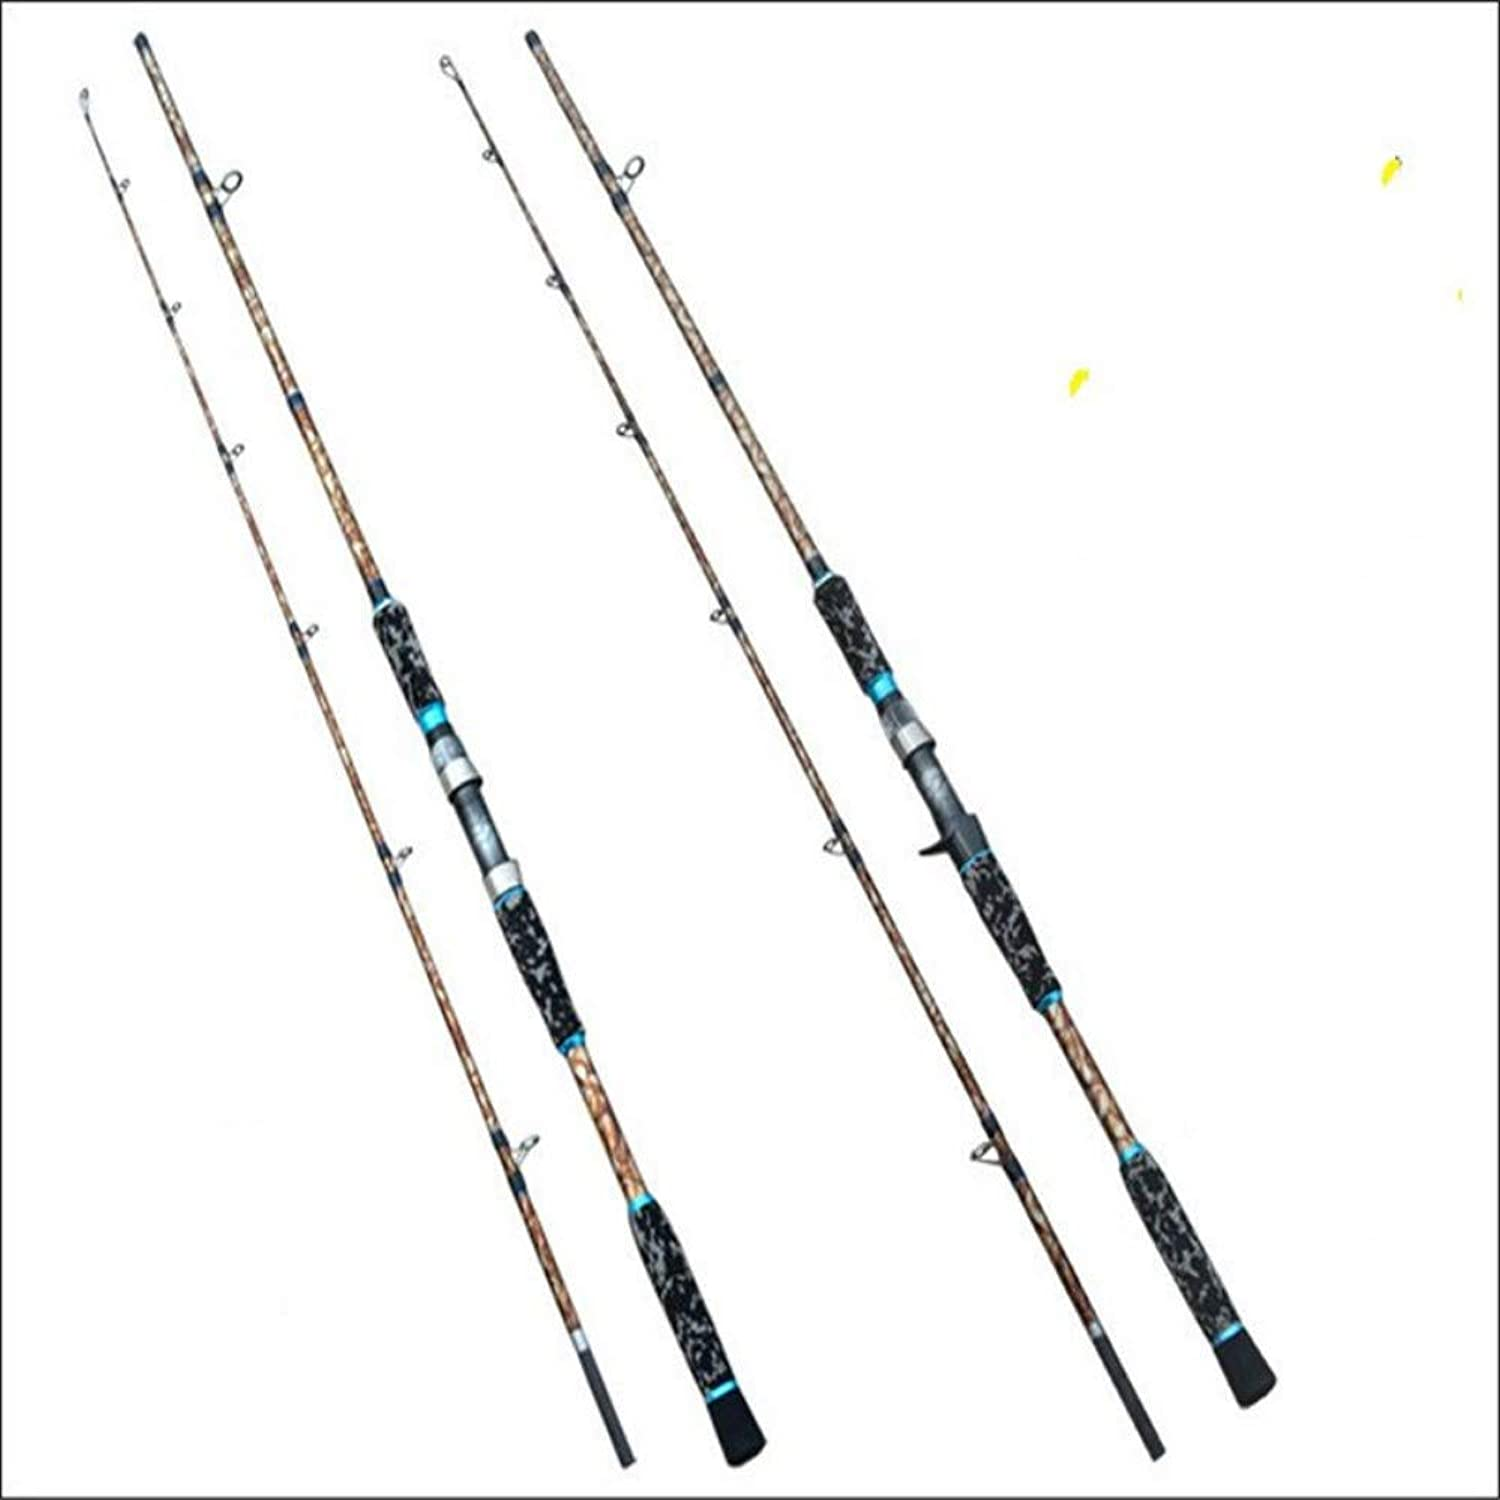 YGDYDBD Camouflage 2.1m Casting & Spinning Angelrute XH Power Eva Griff Carbon Fiber Lure Angelrute